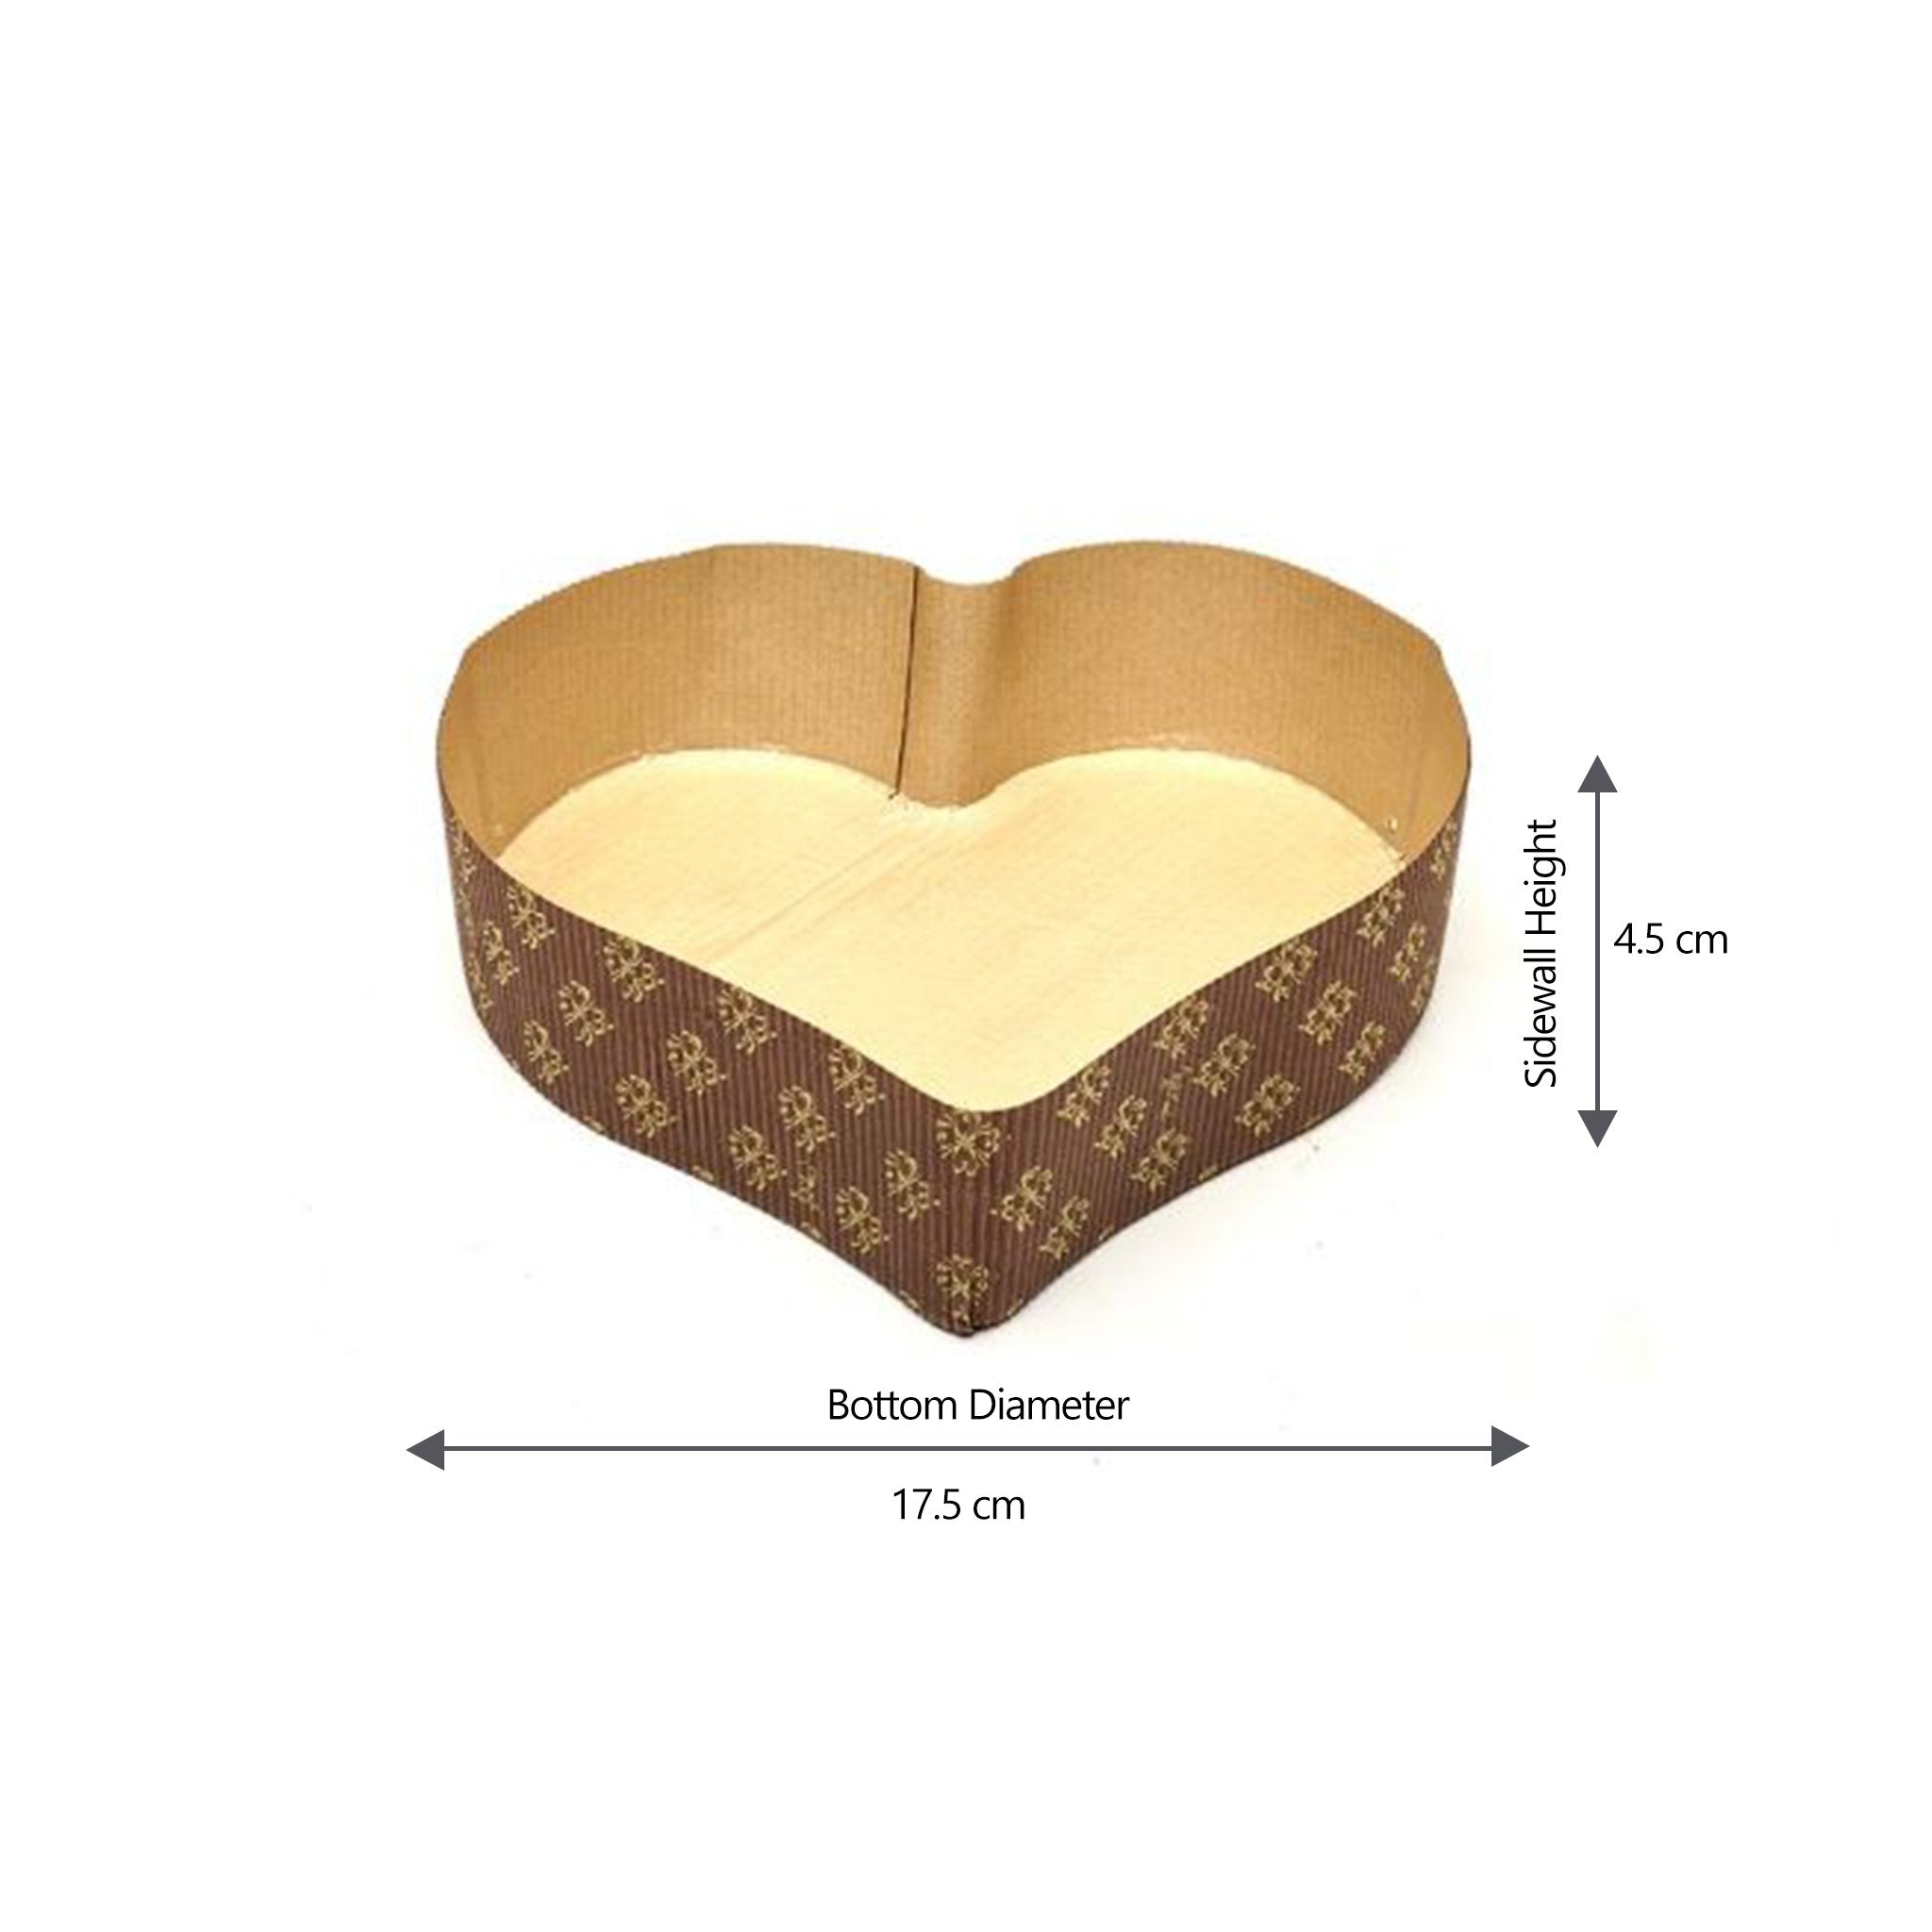 Hotpack |Baking Mold Heart Shape 17.5x4.5 cm |600 Pieces